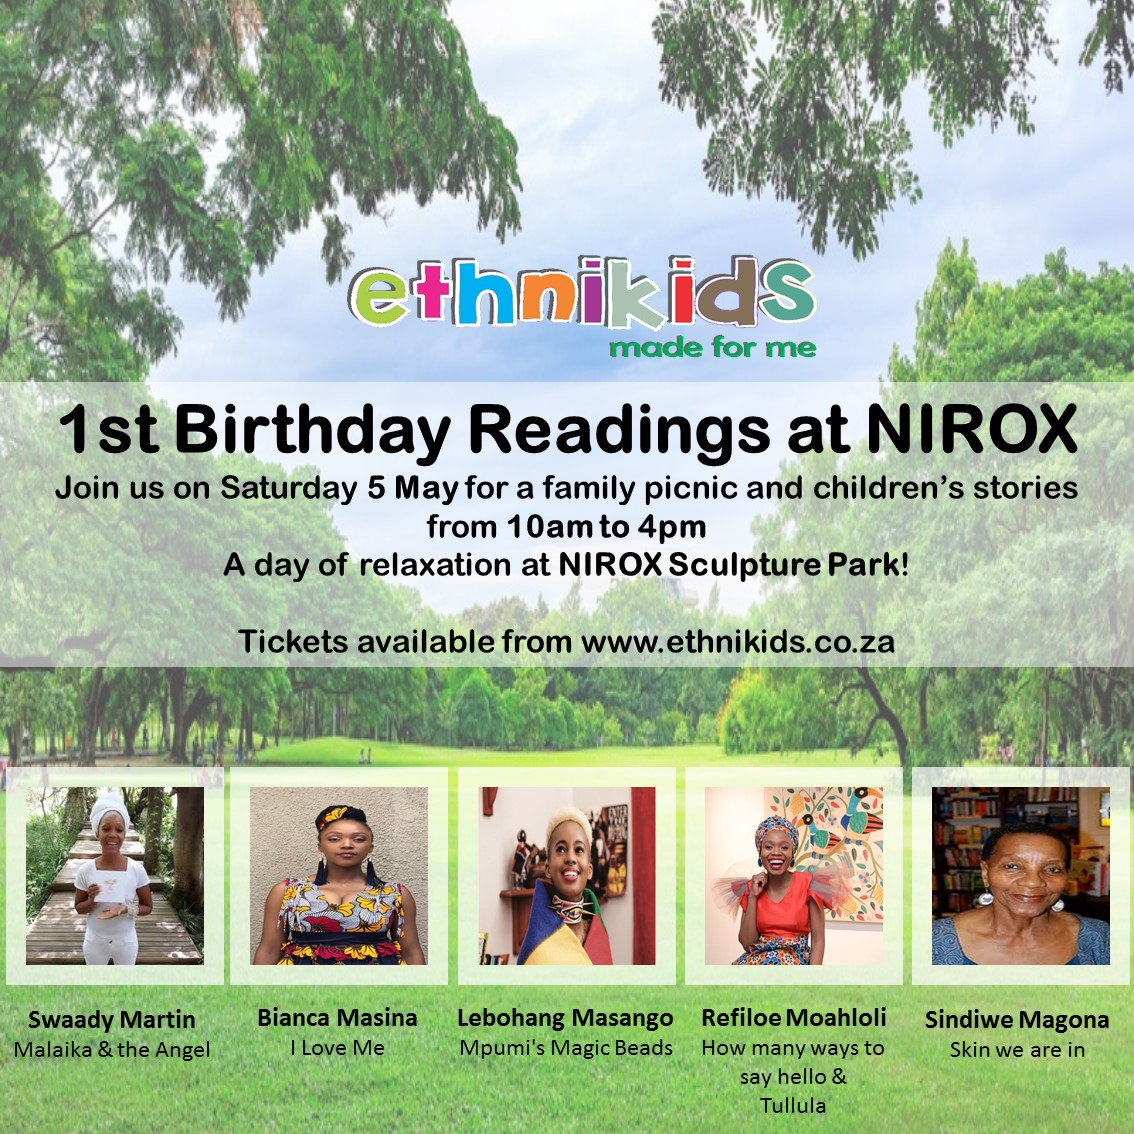 Ethnikids first birthday at NIROX with Sindiwe Magona